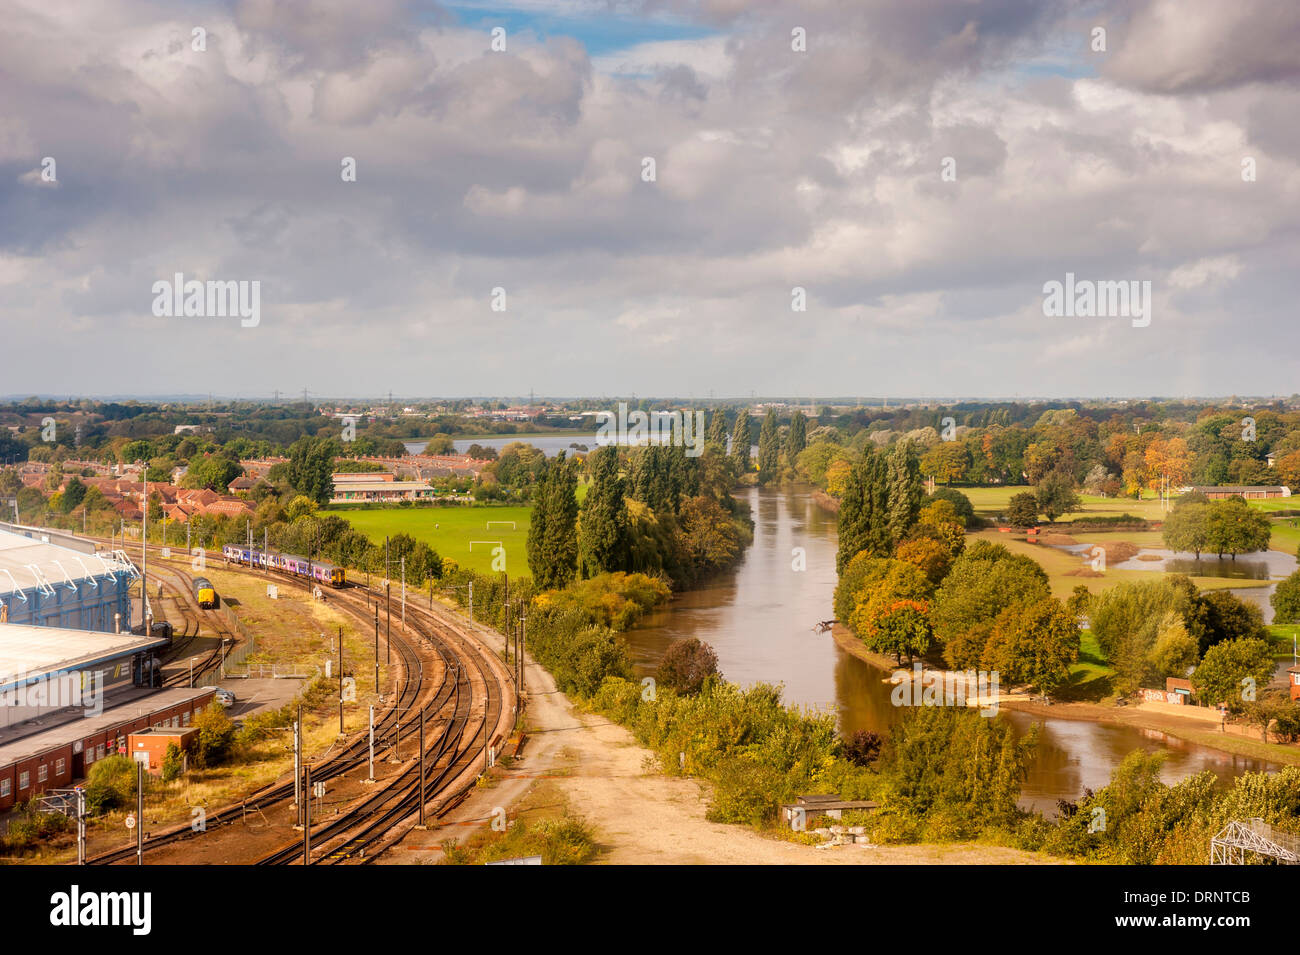 Elevated view of River Ouse in York and Flood plains to either side. Stock Photo